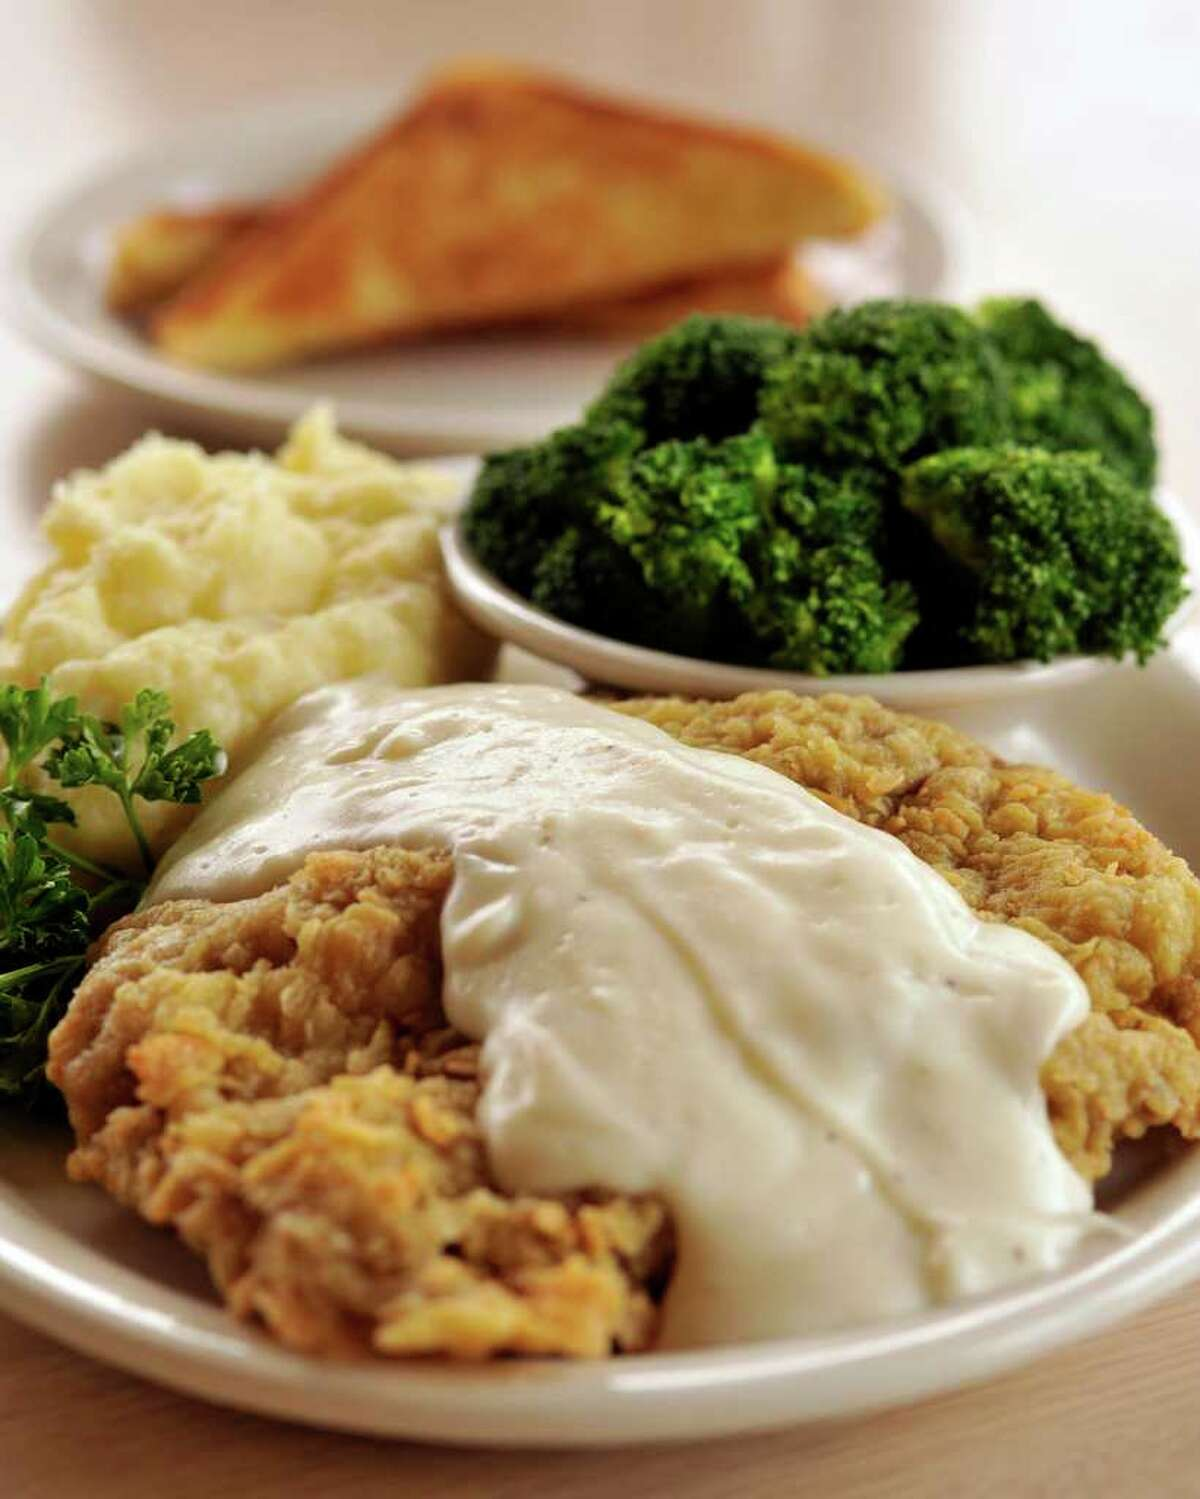 Chicken Fried Steak from Jim's Restaurant, voted the Readers' Choice for best longtime favorite and best service.